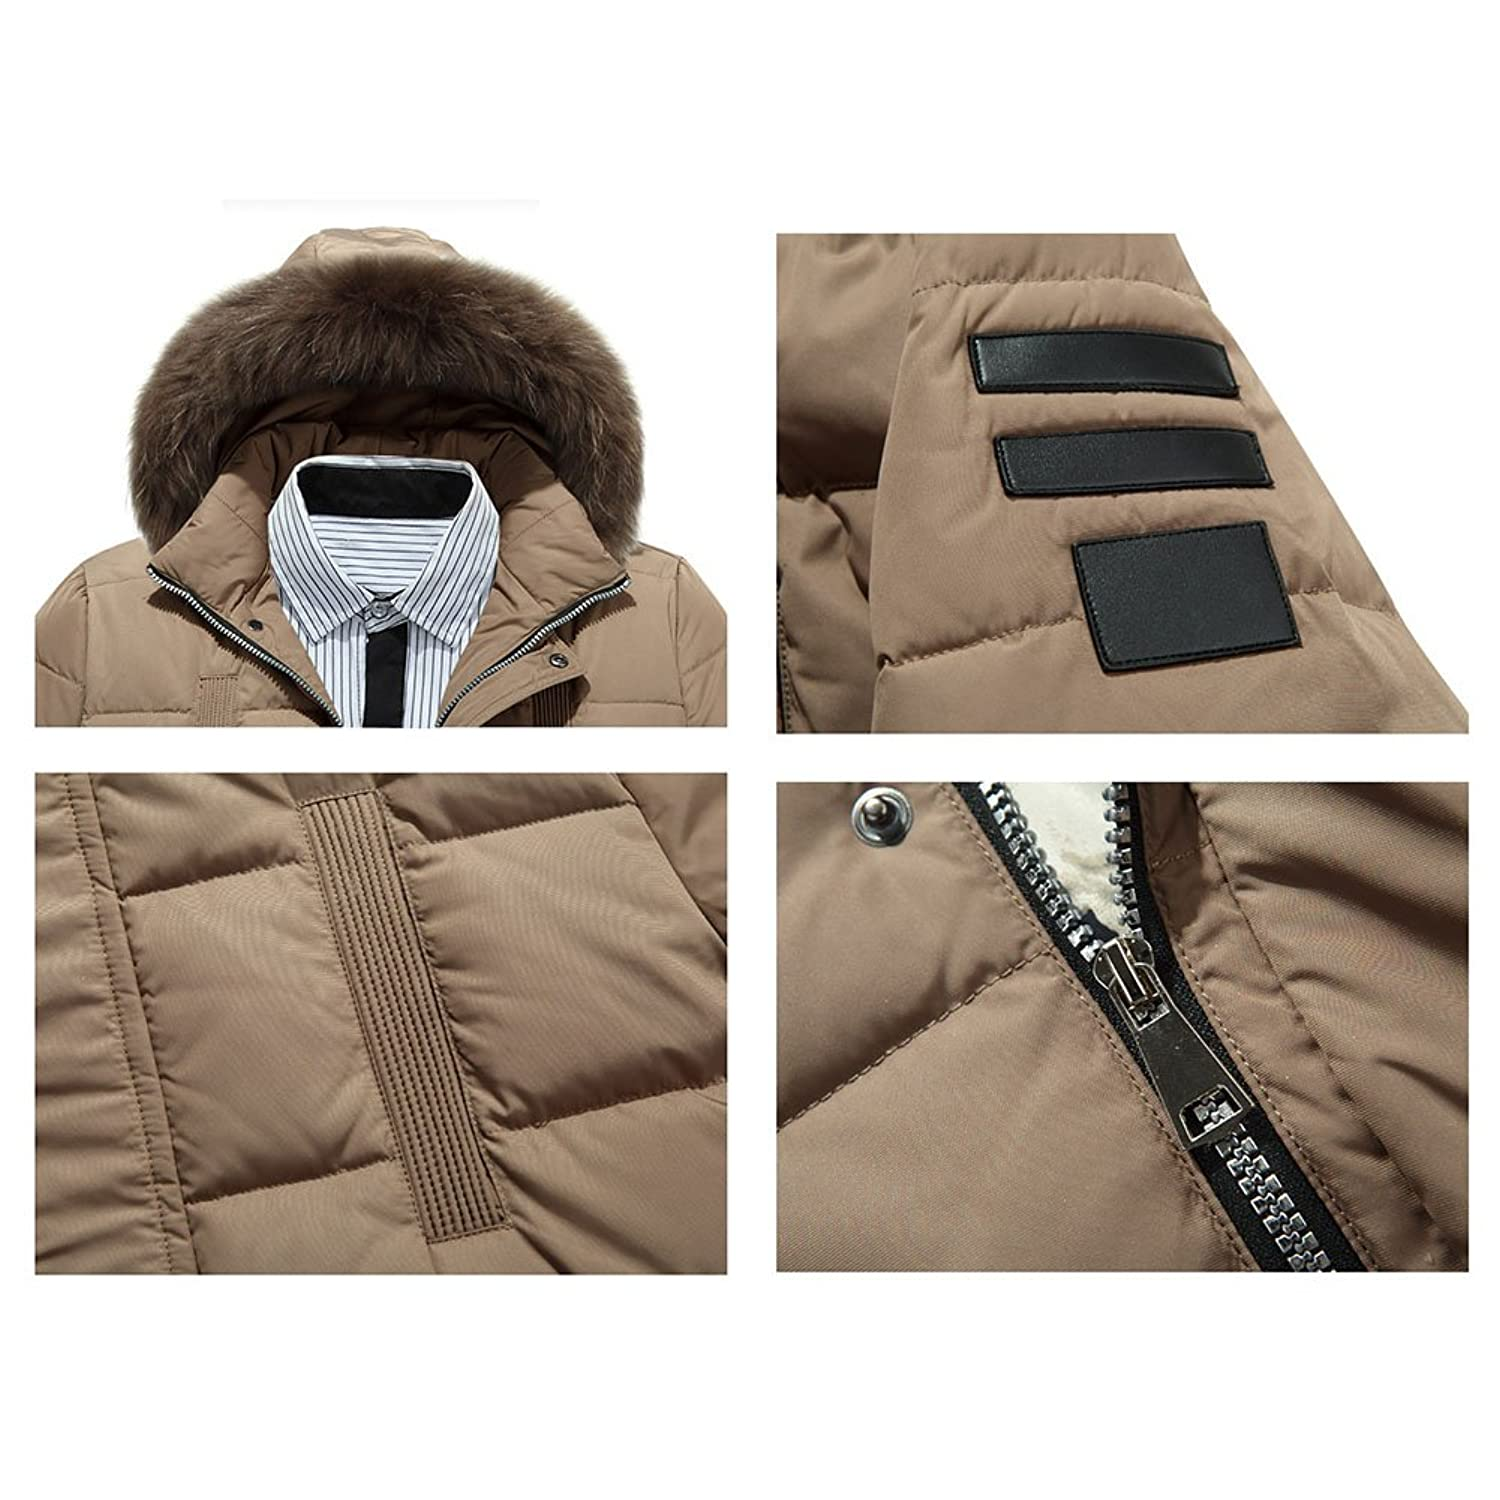 Highdas Men's Jacket Down Coat Parka - Men Warm Detachable Hooded Thick  Padded Jacket Outwear Windproof Winter Coats: Amazon.co.uk: Clothing